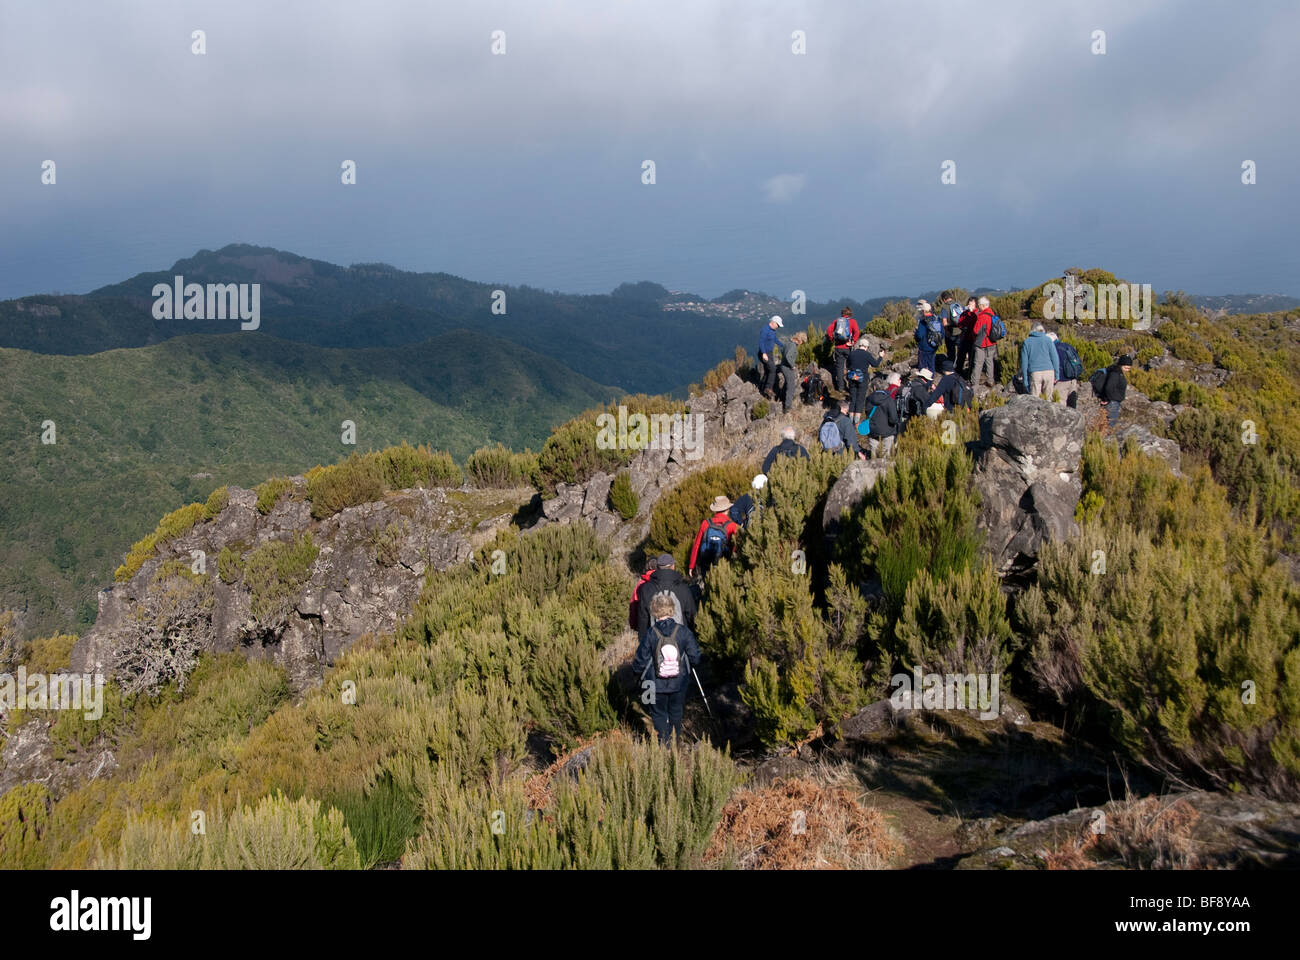 Pico Ruivo is the highest peak on the Madeira Islands. Touring party on the slopes. Coastal vegetation. Coastline. - Stock Image